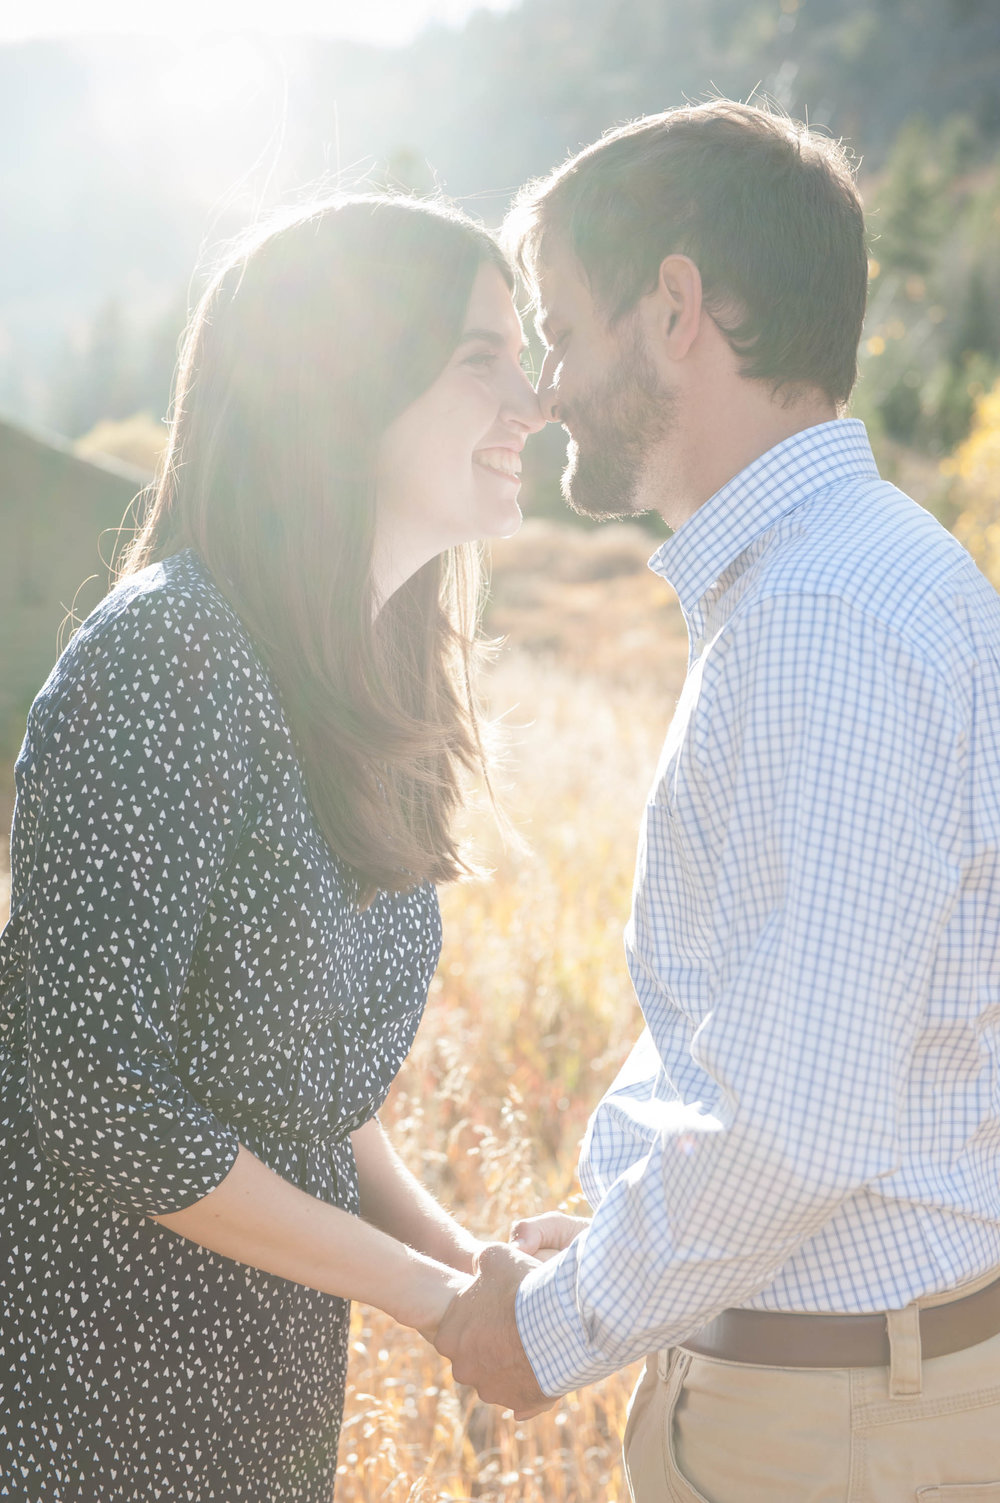 AMW-Engagement-MichelleAllen-JamesPeak-217.jpg